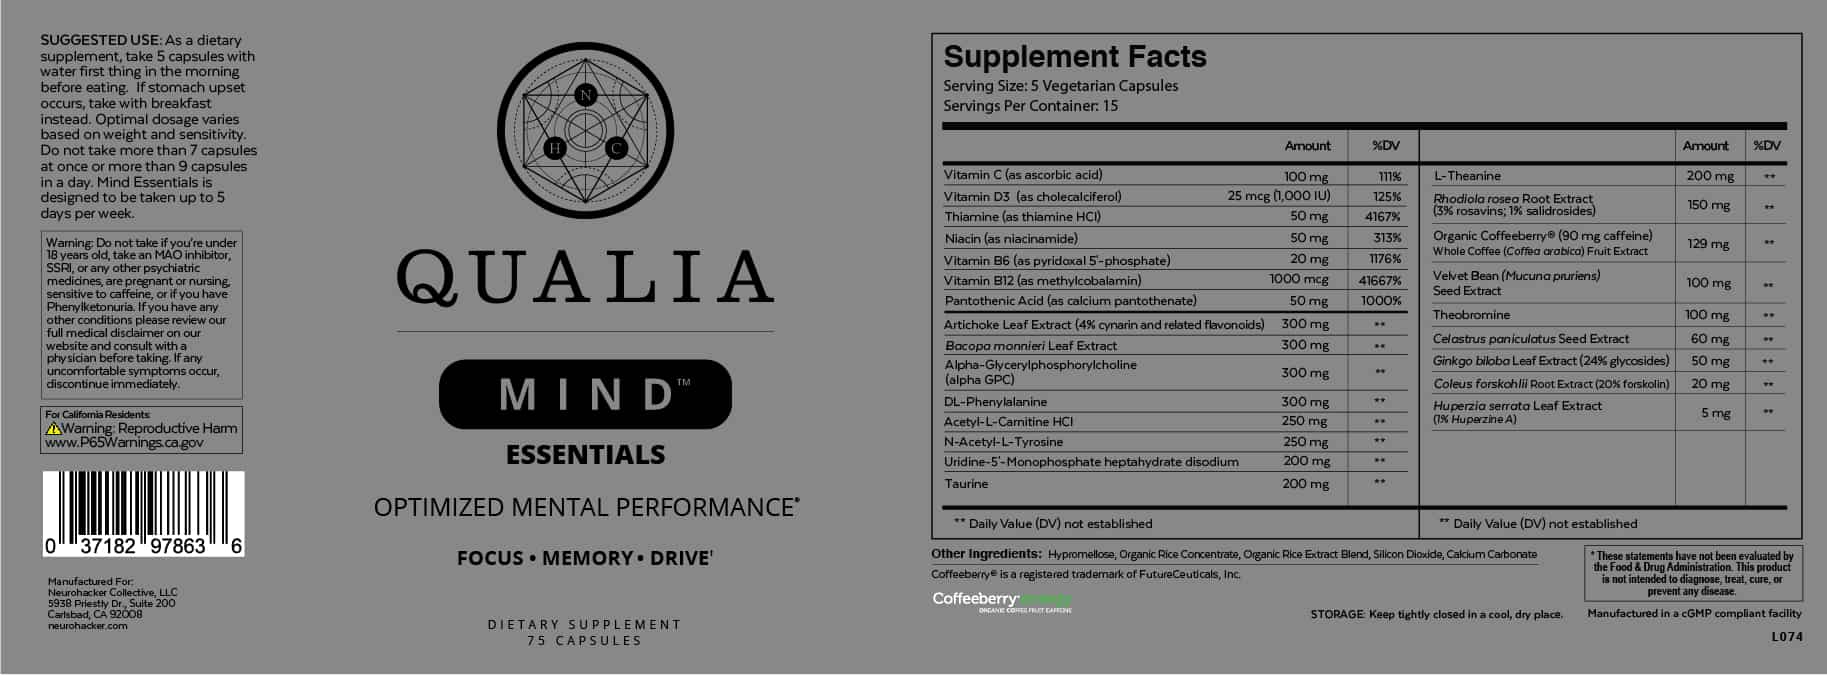 Qualia Mind Essentials ingredients